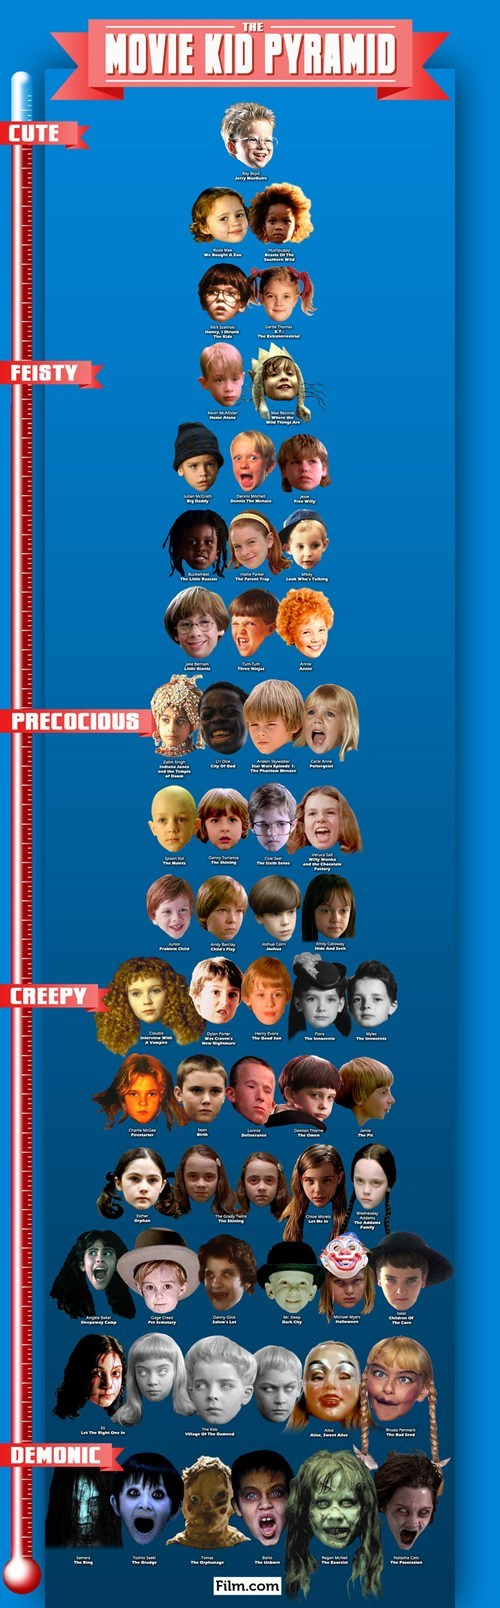 Movie Kid Pyramid